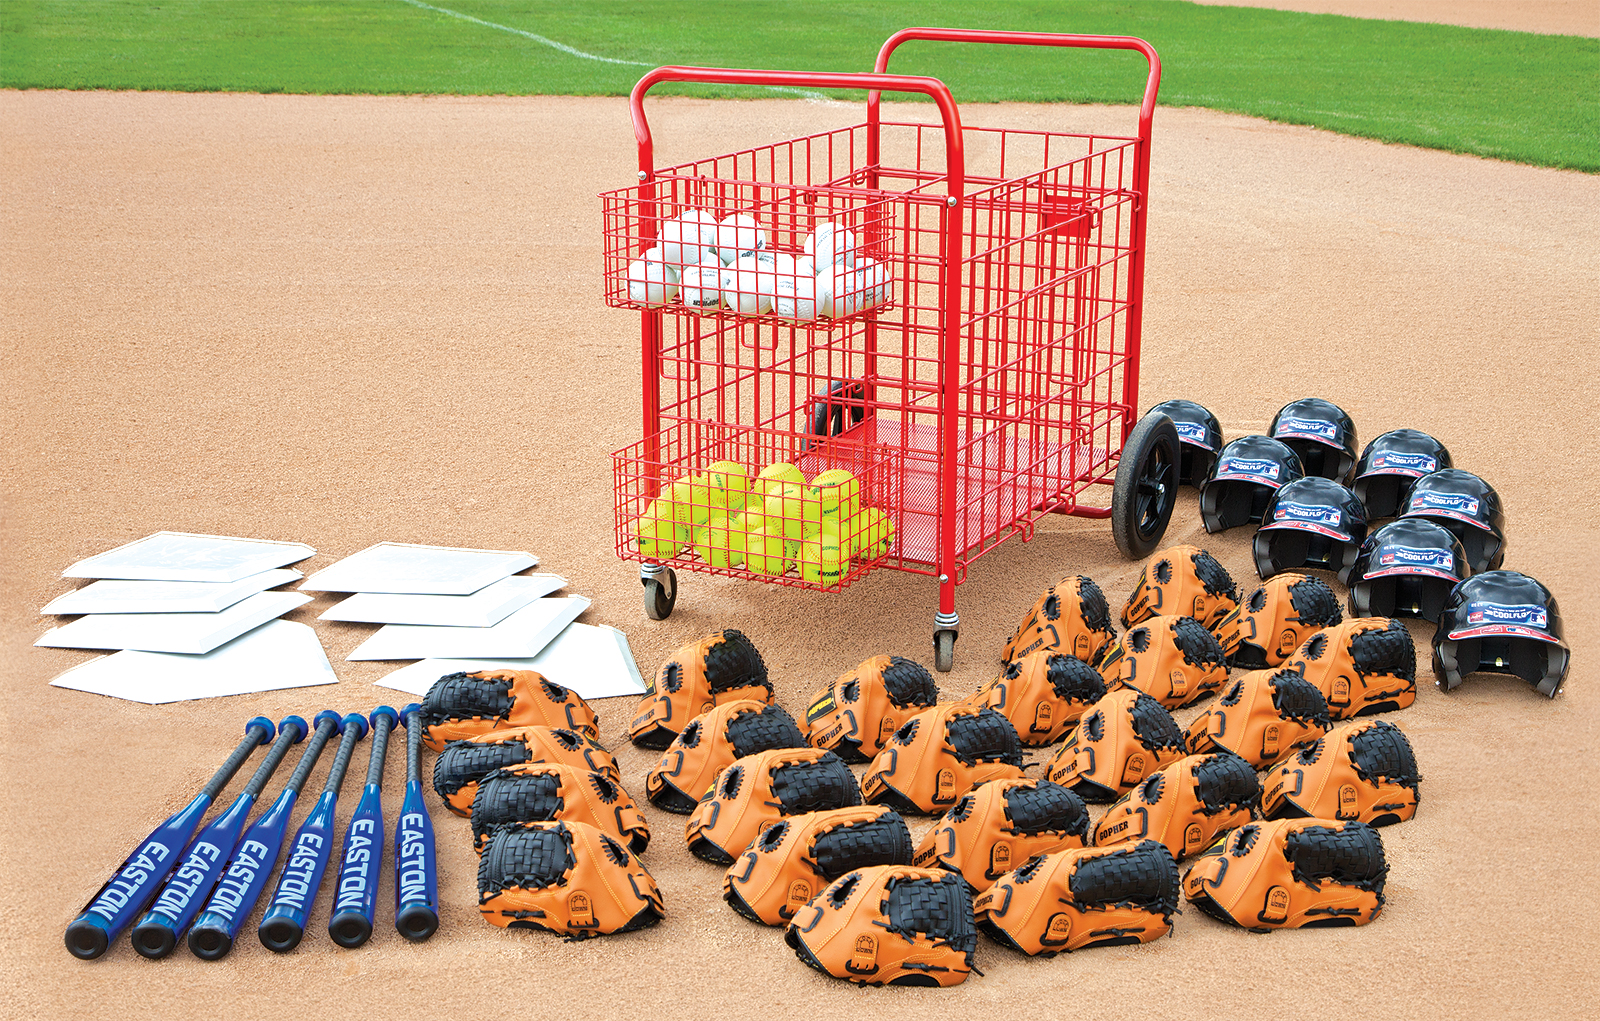 Complete set of baseball equipment